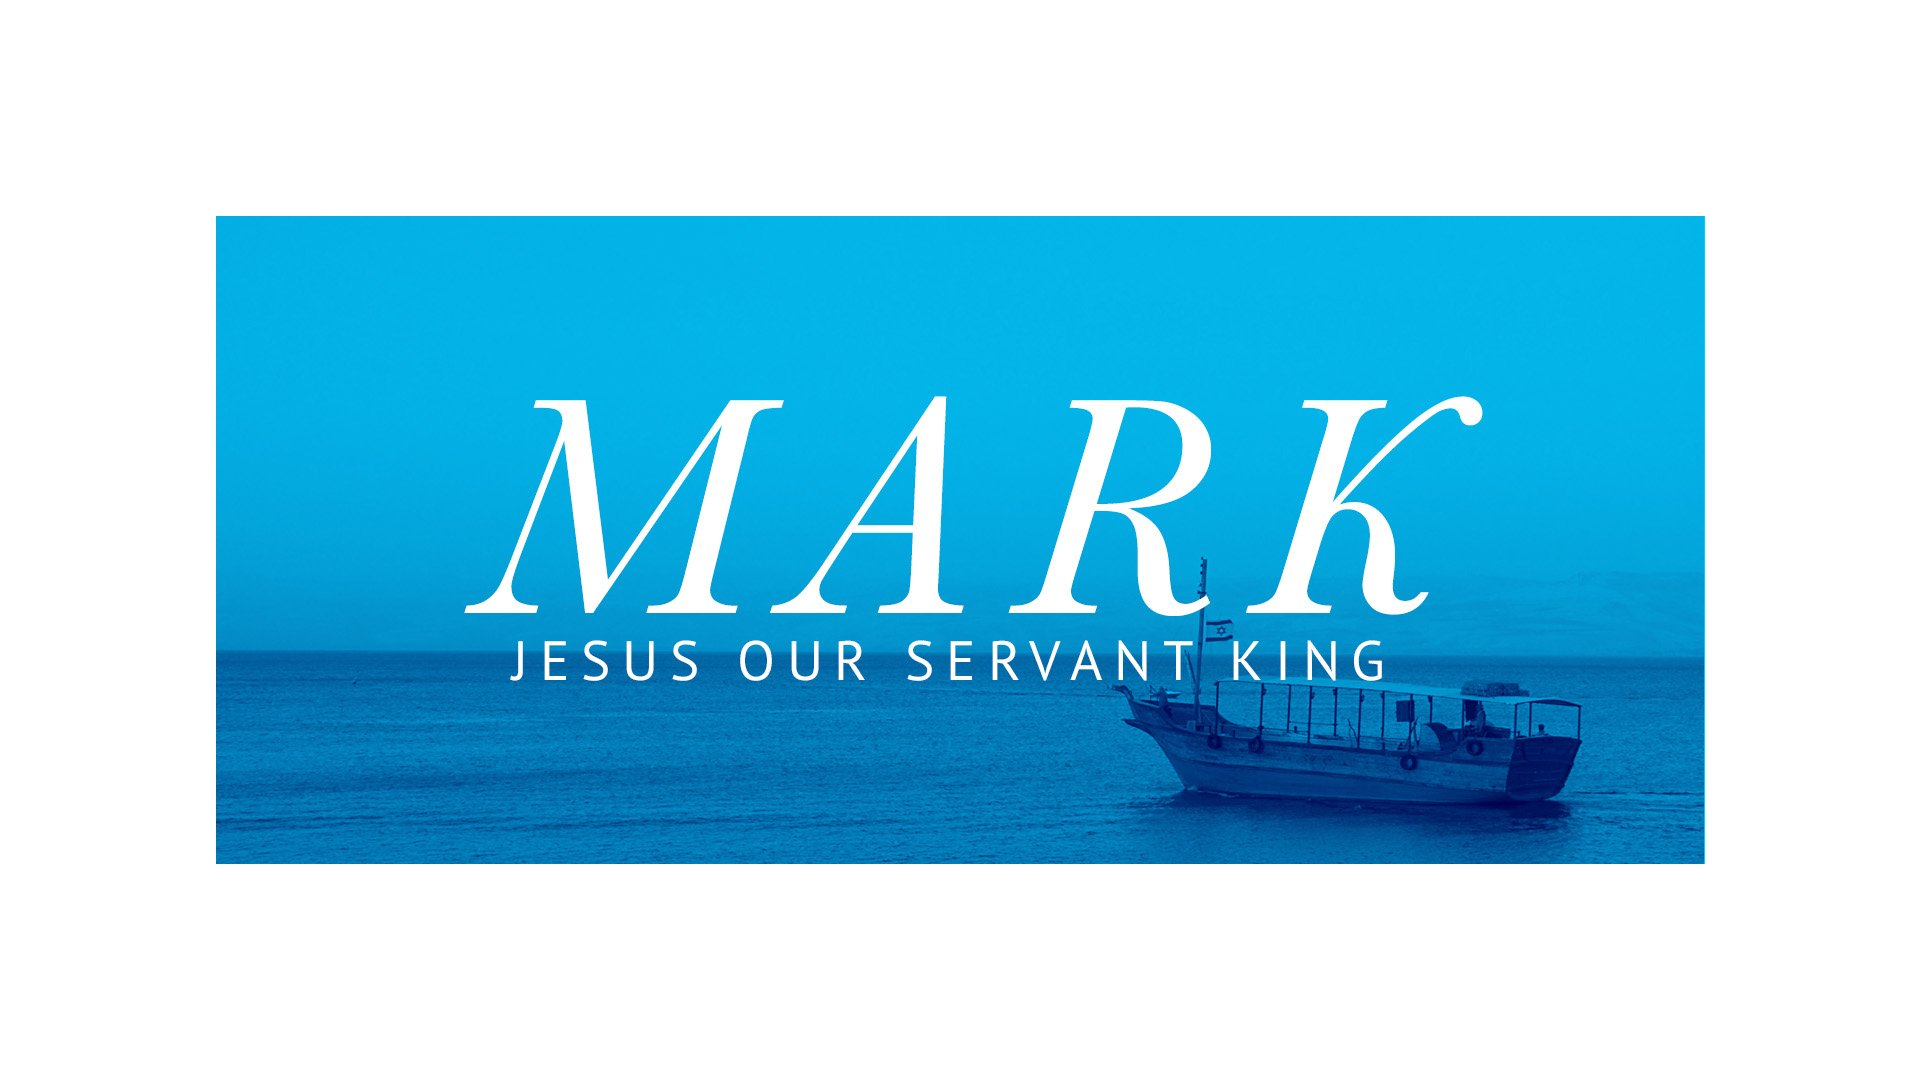 March 10, 2019 – The Gospel of Mark